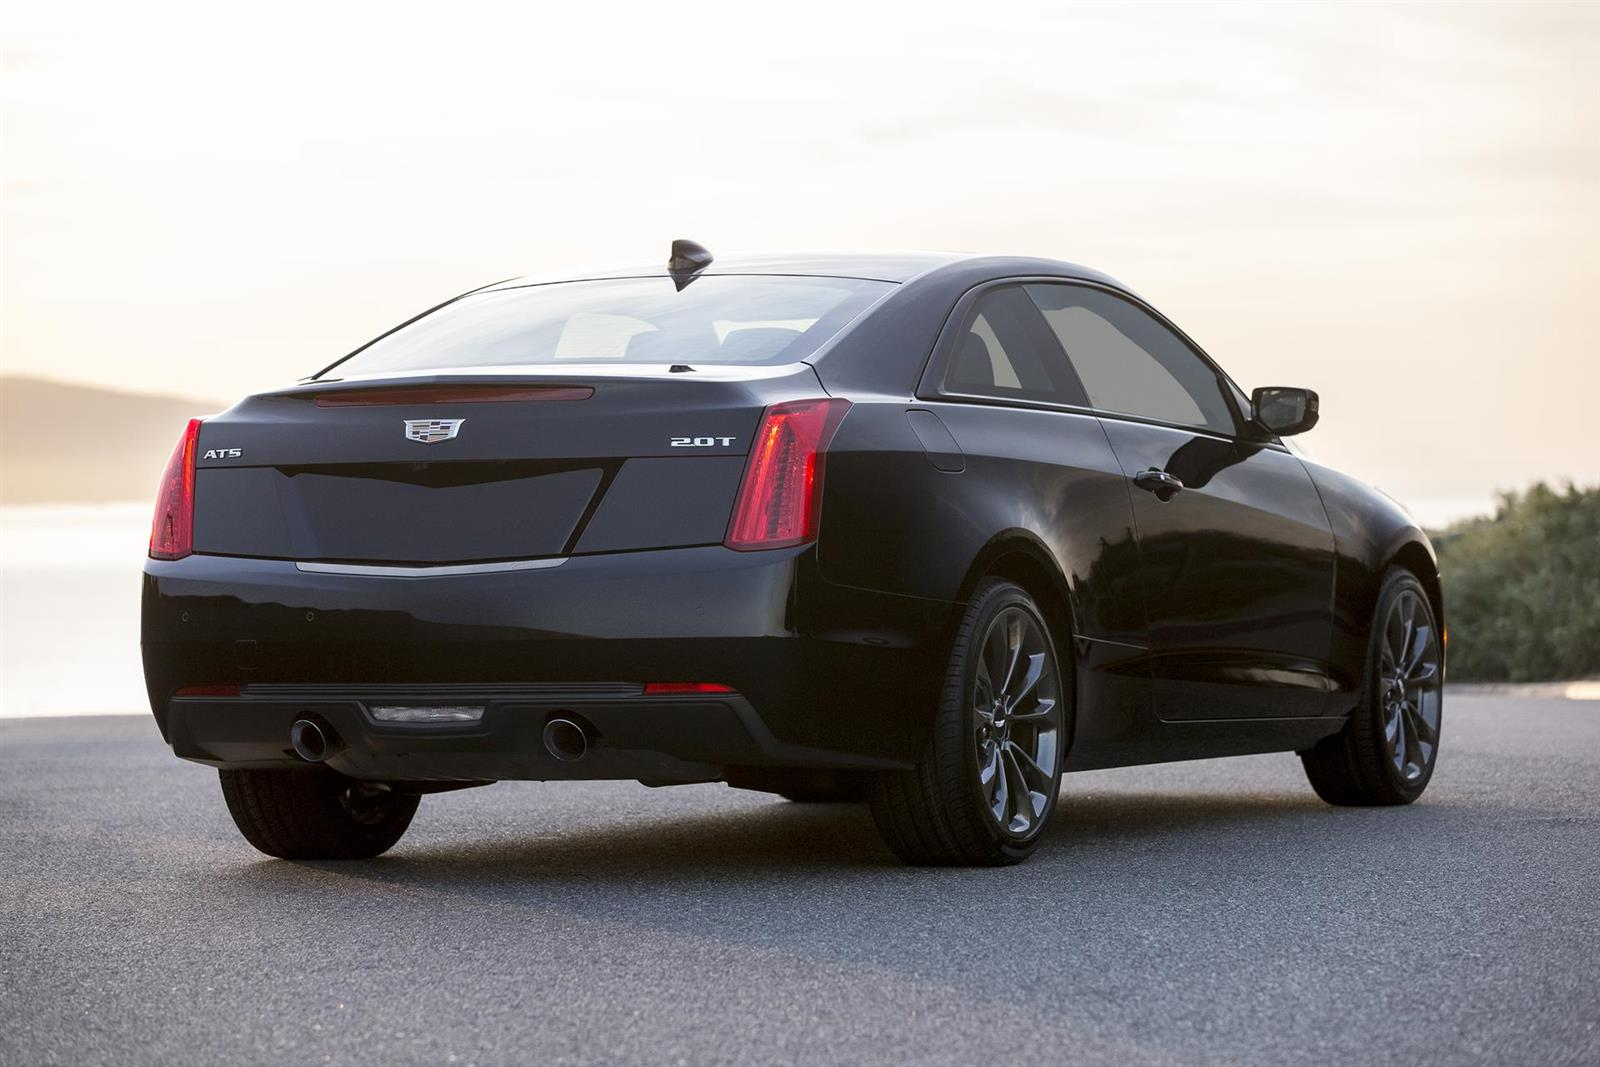 2016 Cadillac ATS Black Chrome Package